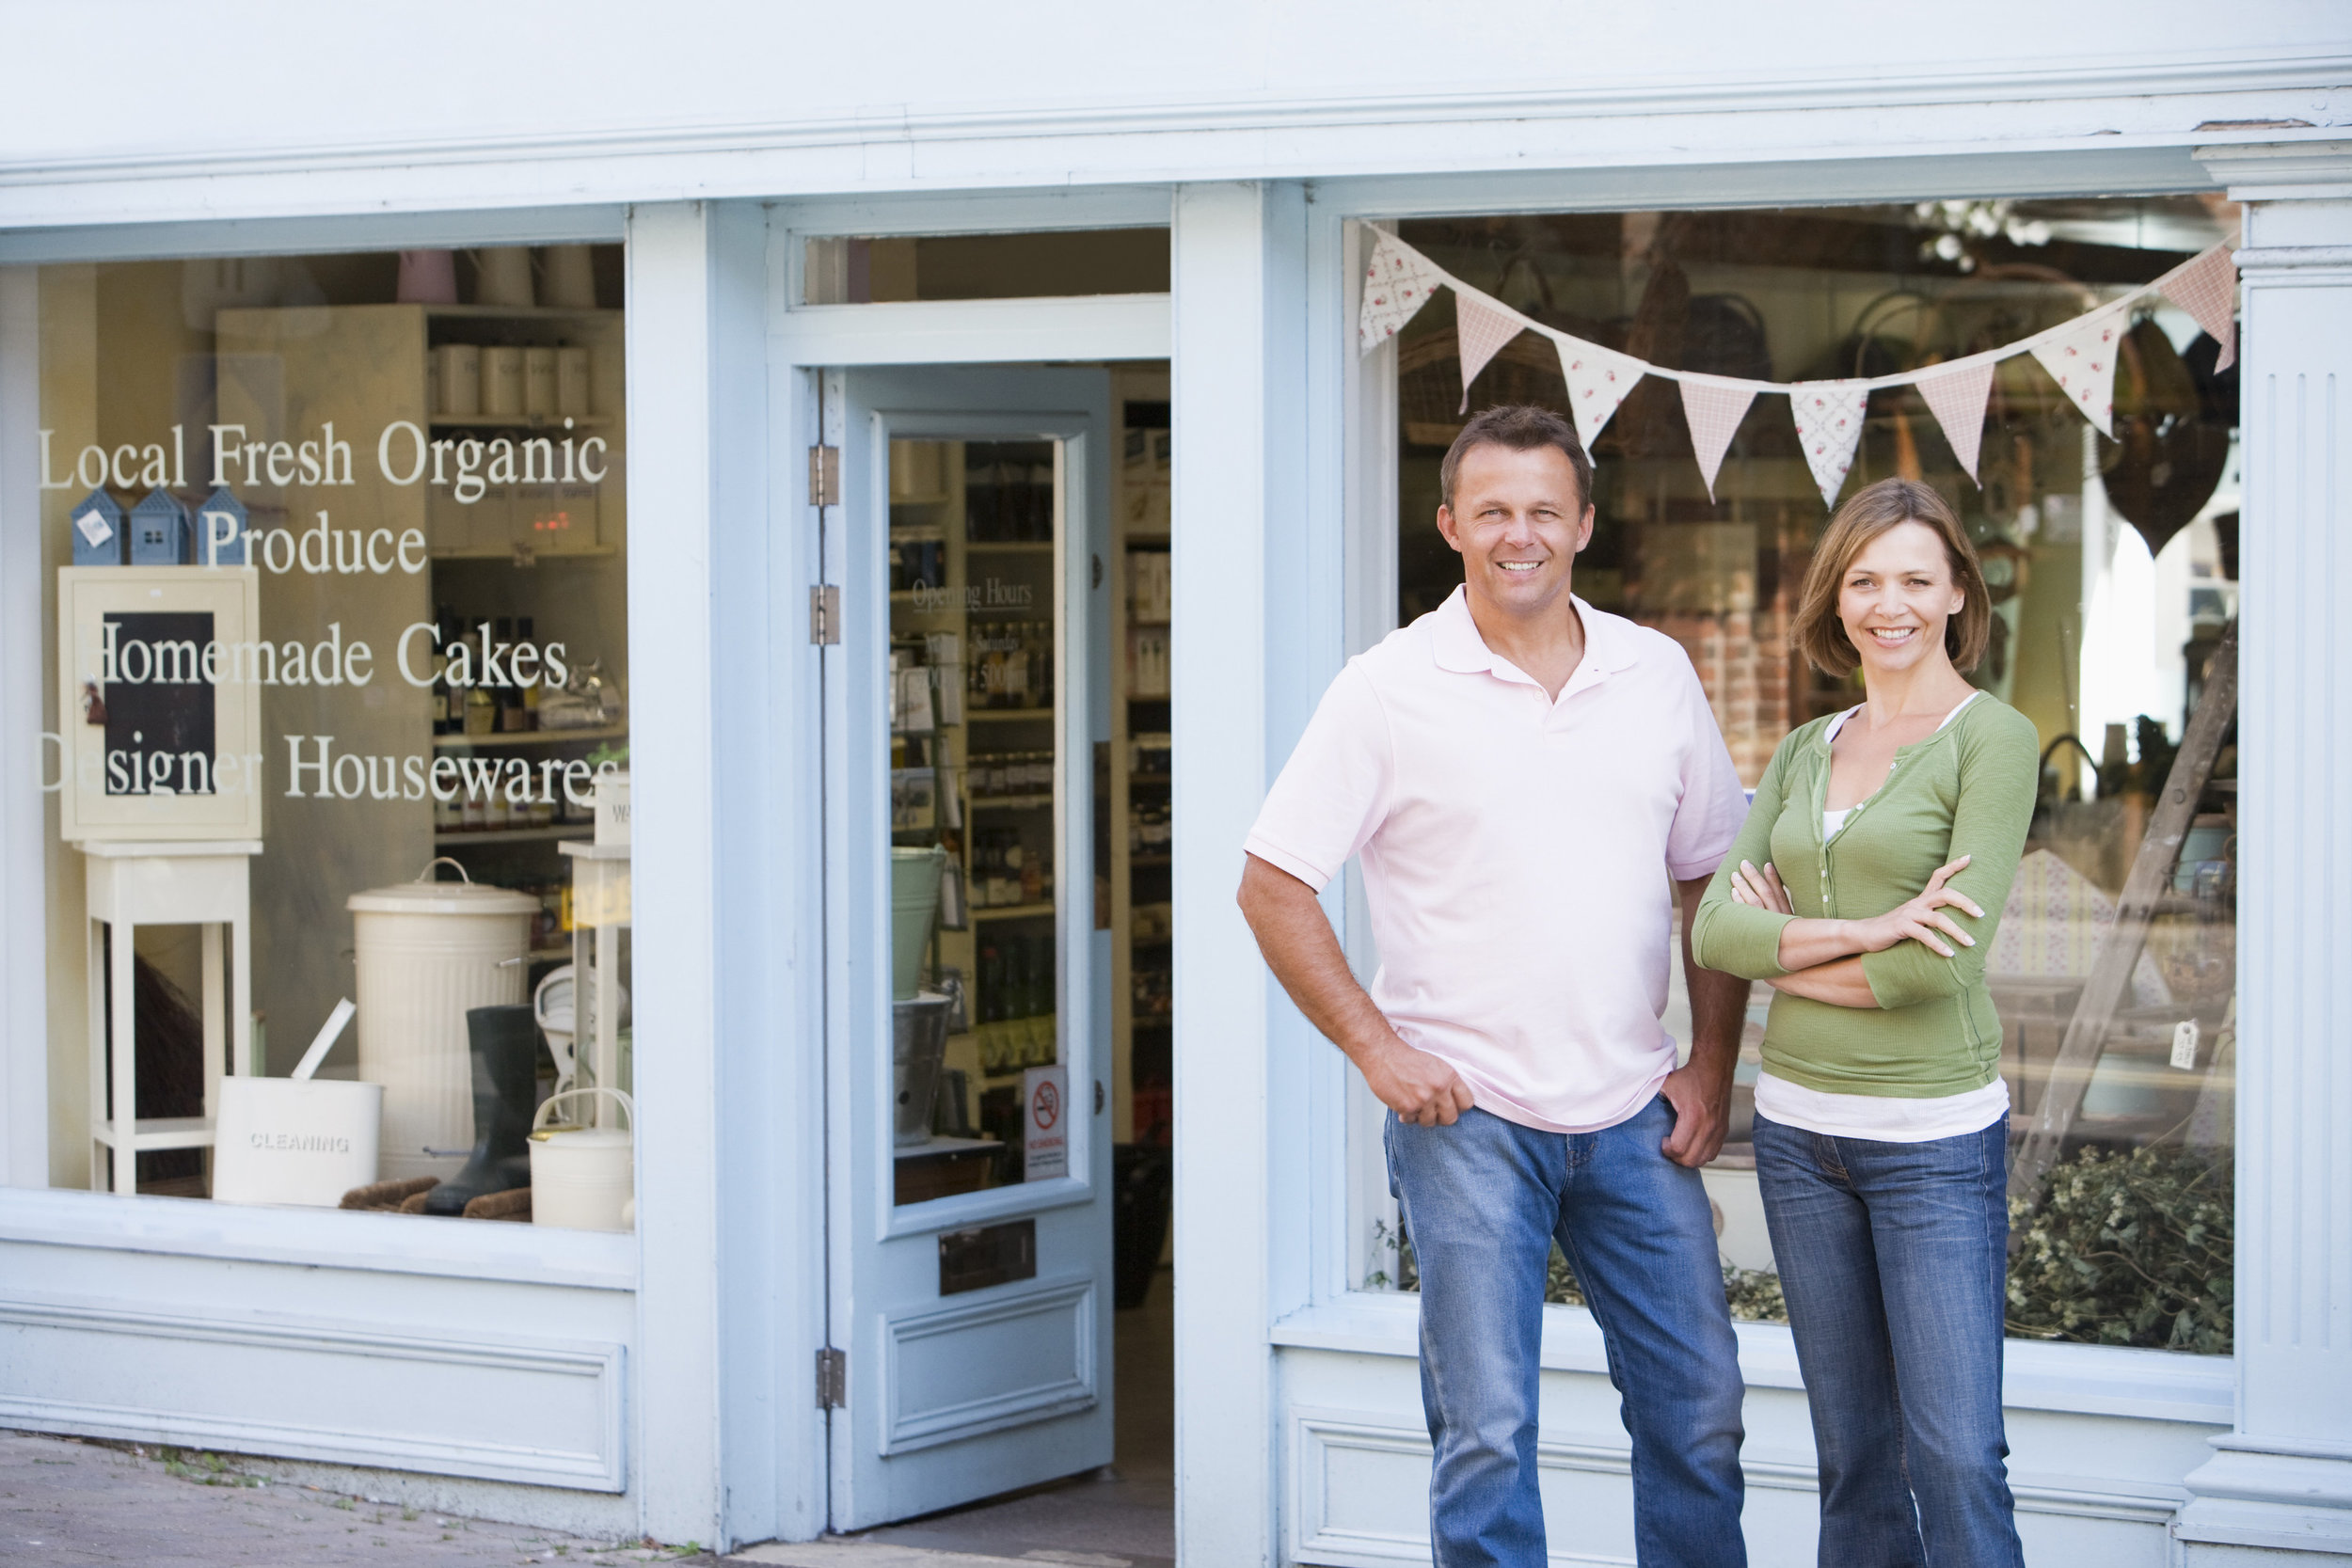 Male and female local business owners standing in front of shop